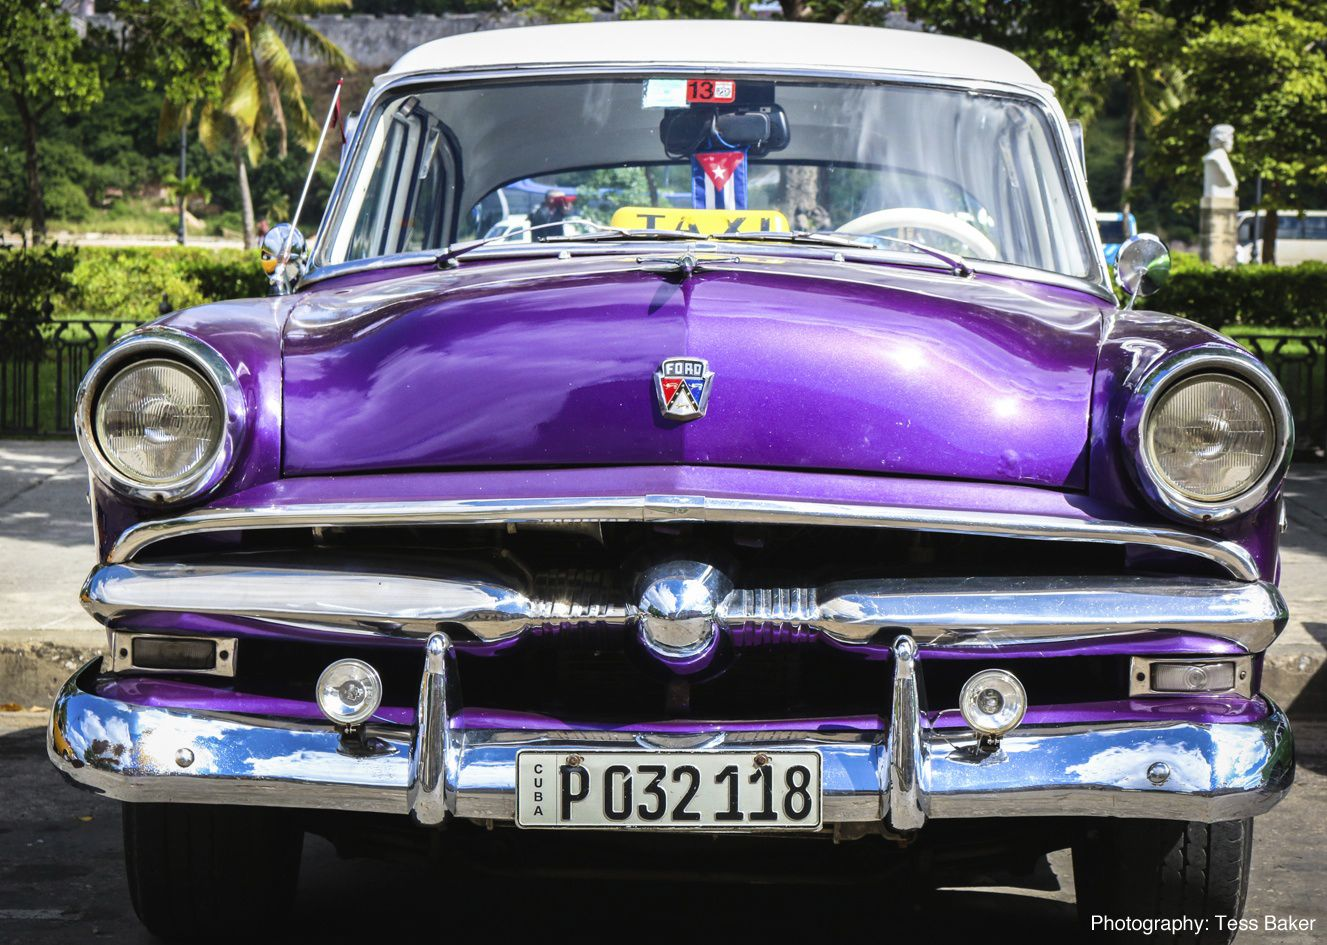 cubacyclingadventure6.jpg - Cuba - Cuban Wheels - Cycling Adventures